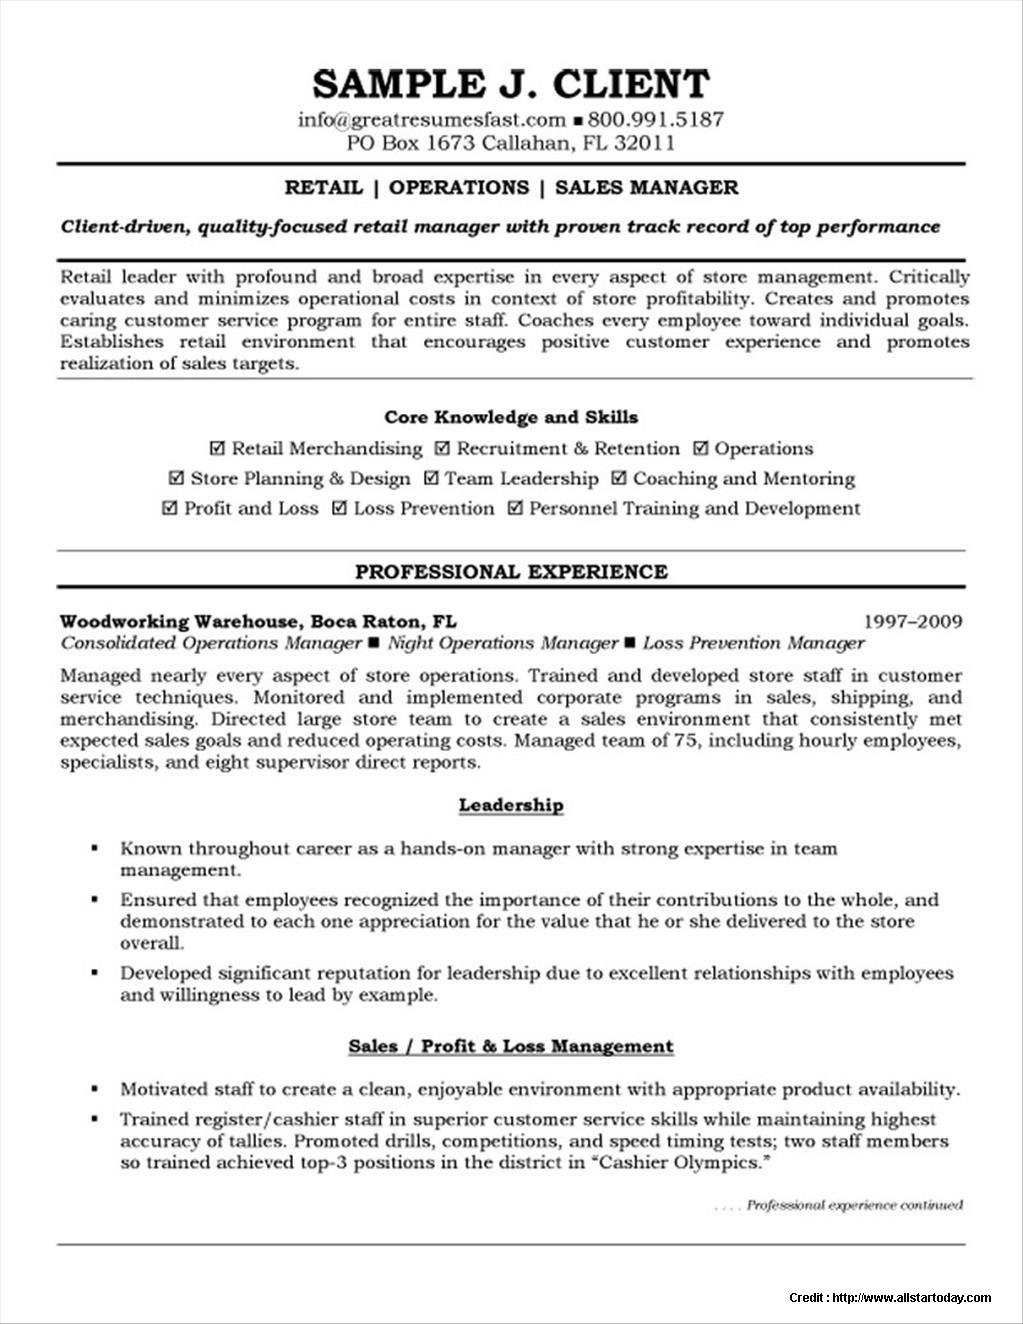 warehouse resume template free manager templates clerk retail examples simple for high Resume Warehouse Clerk Resume Examples